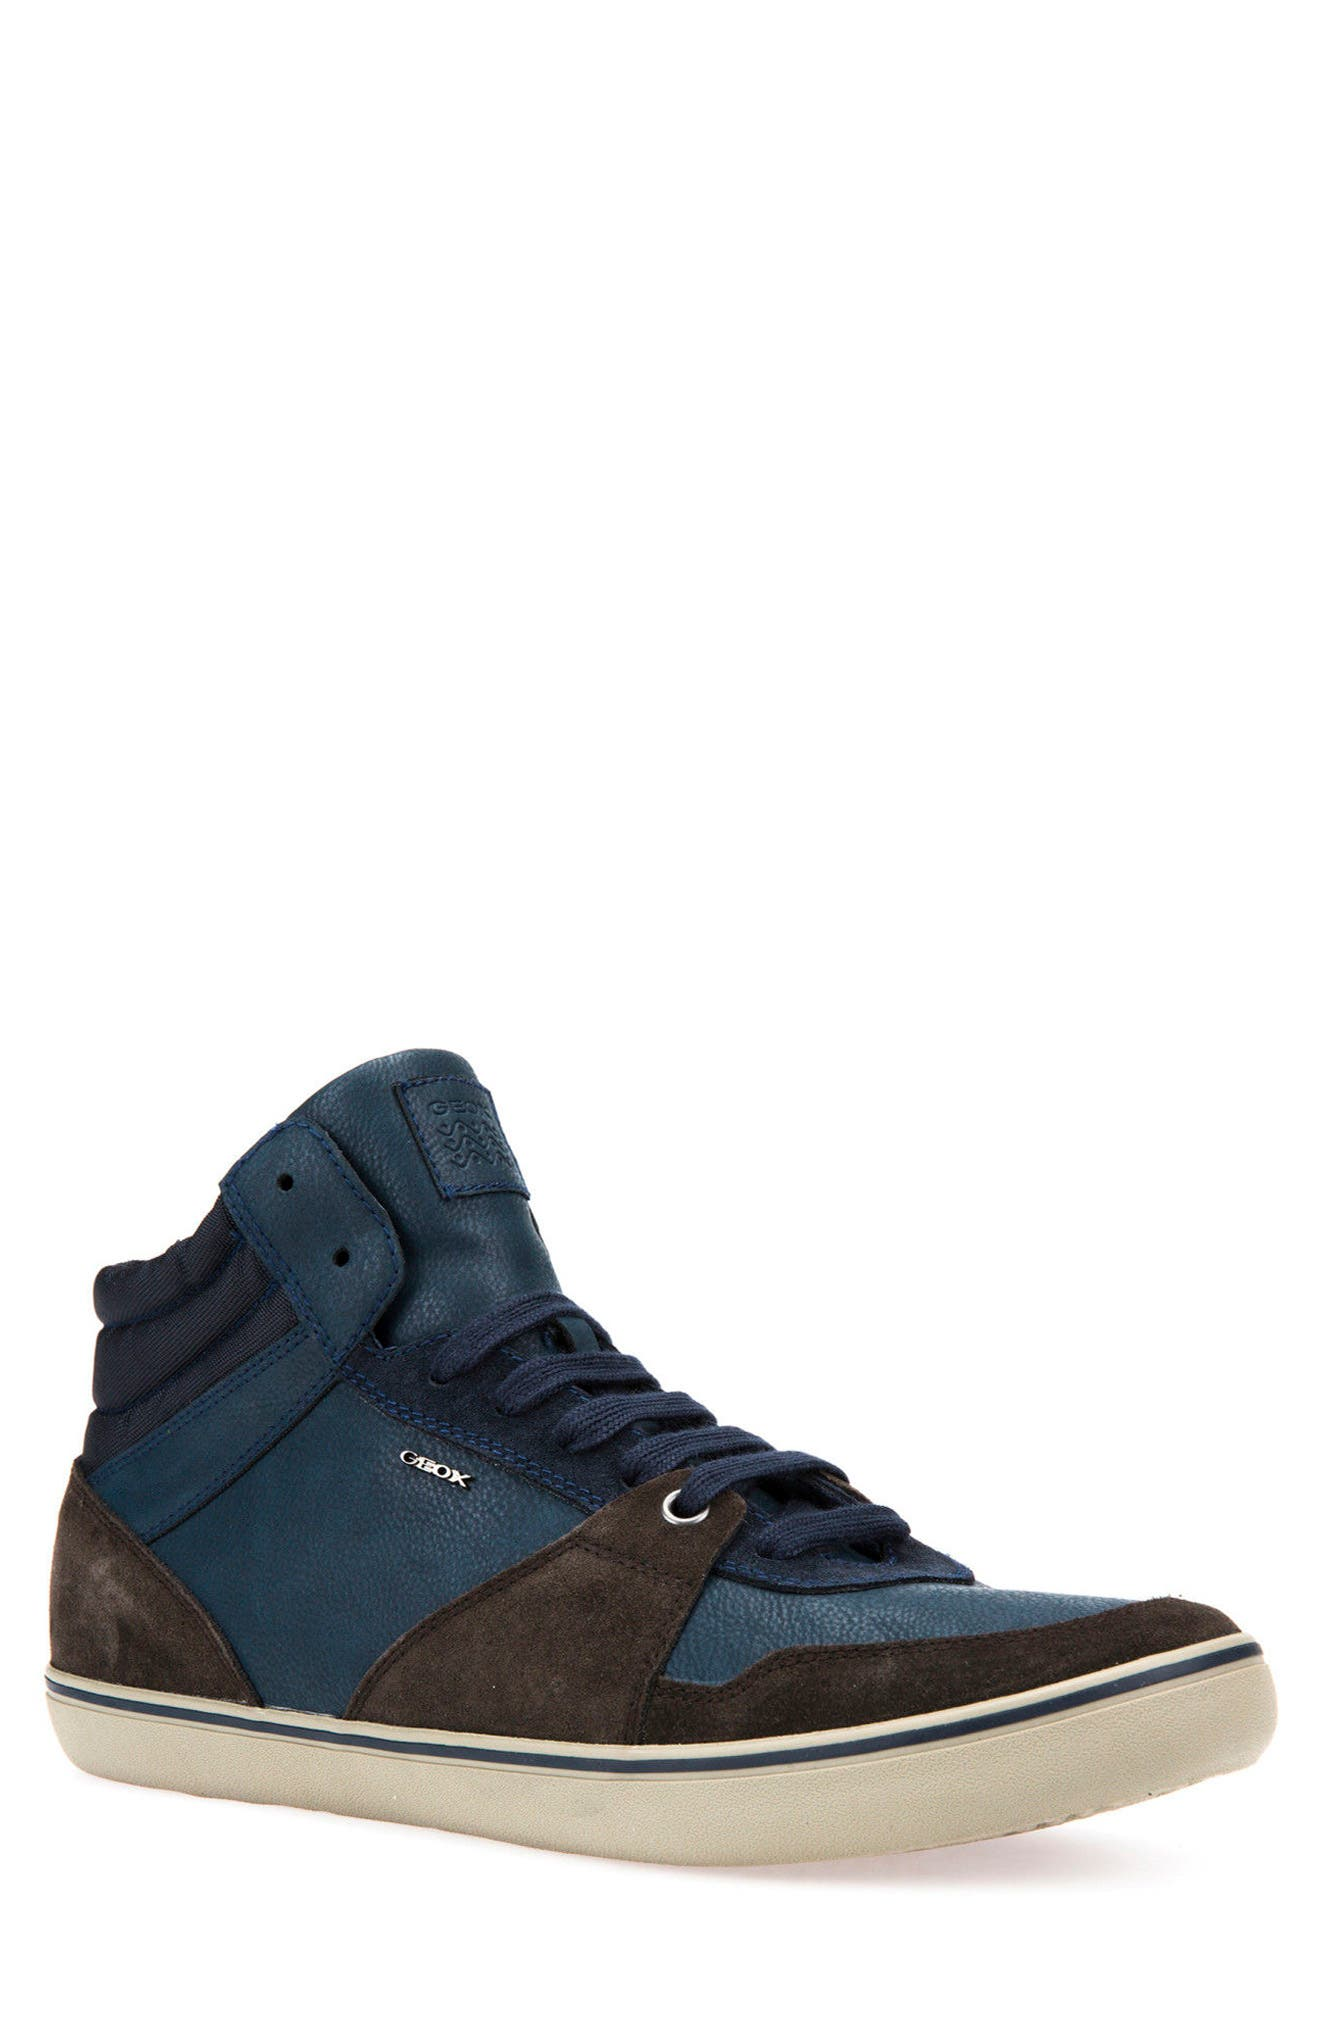 Box 29 High Top Sneaker,                         Main,                         color, 200